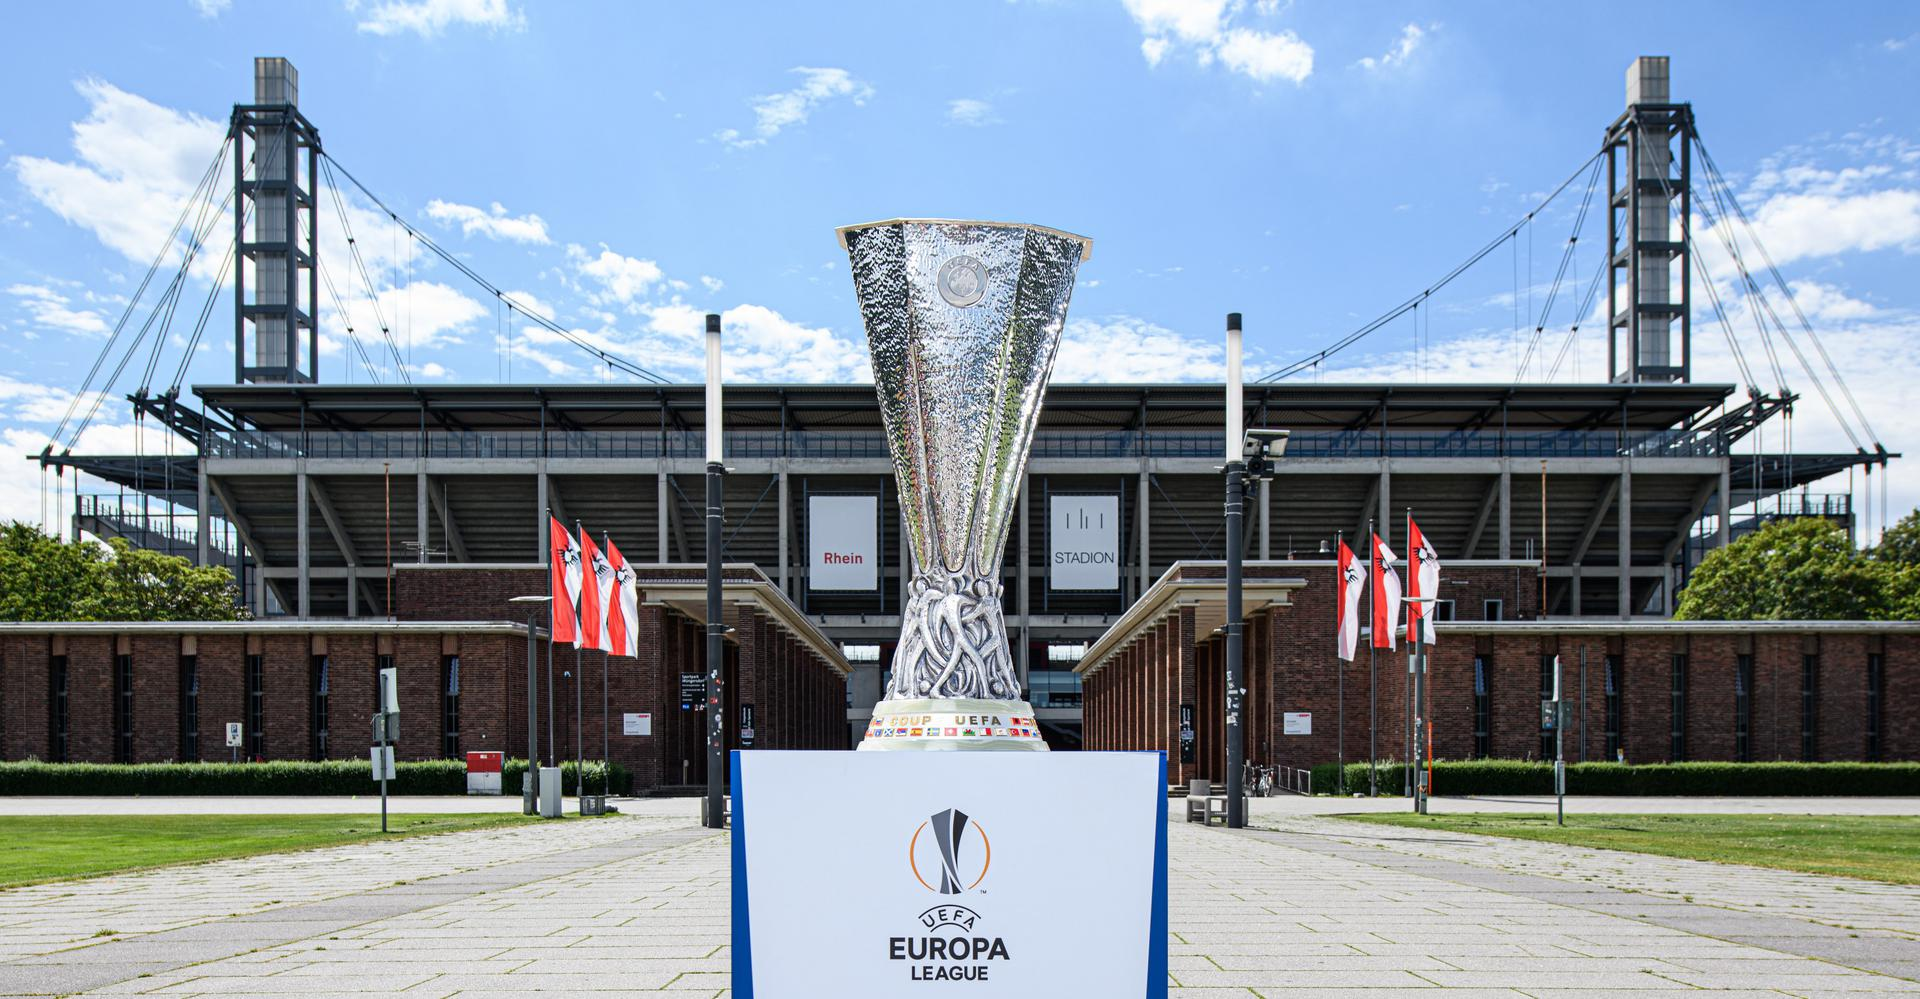 Europa League trophy outside Stadion Koln,